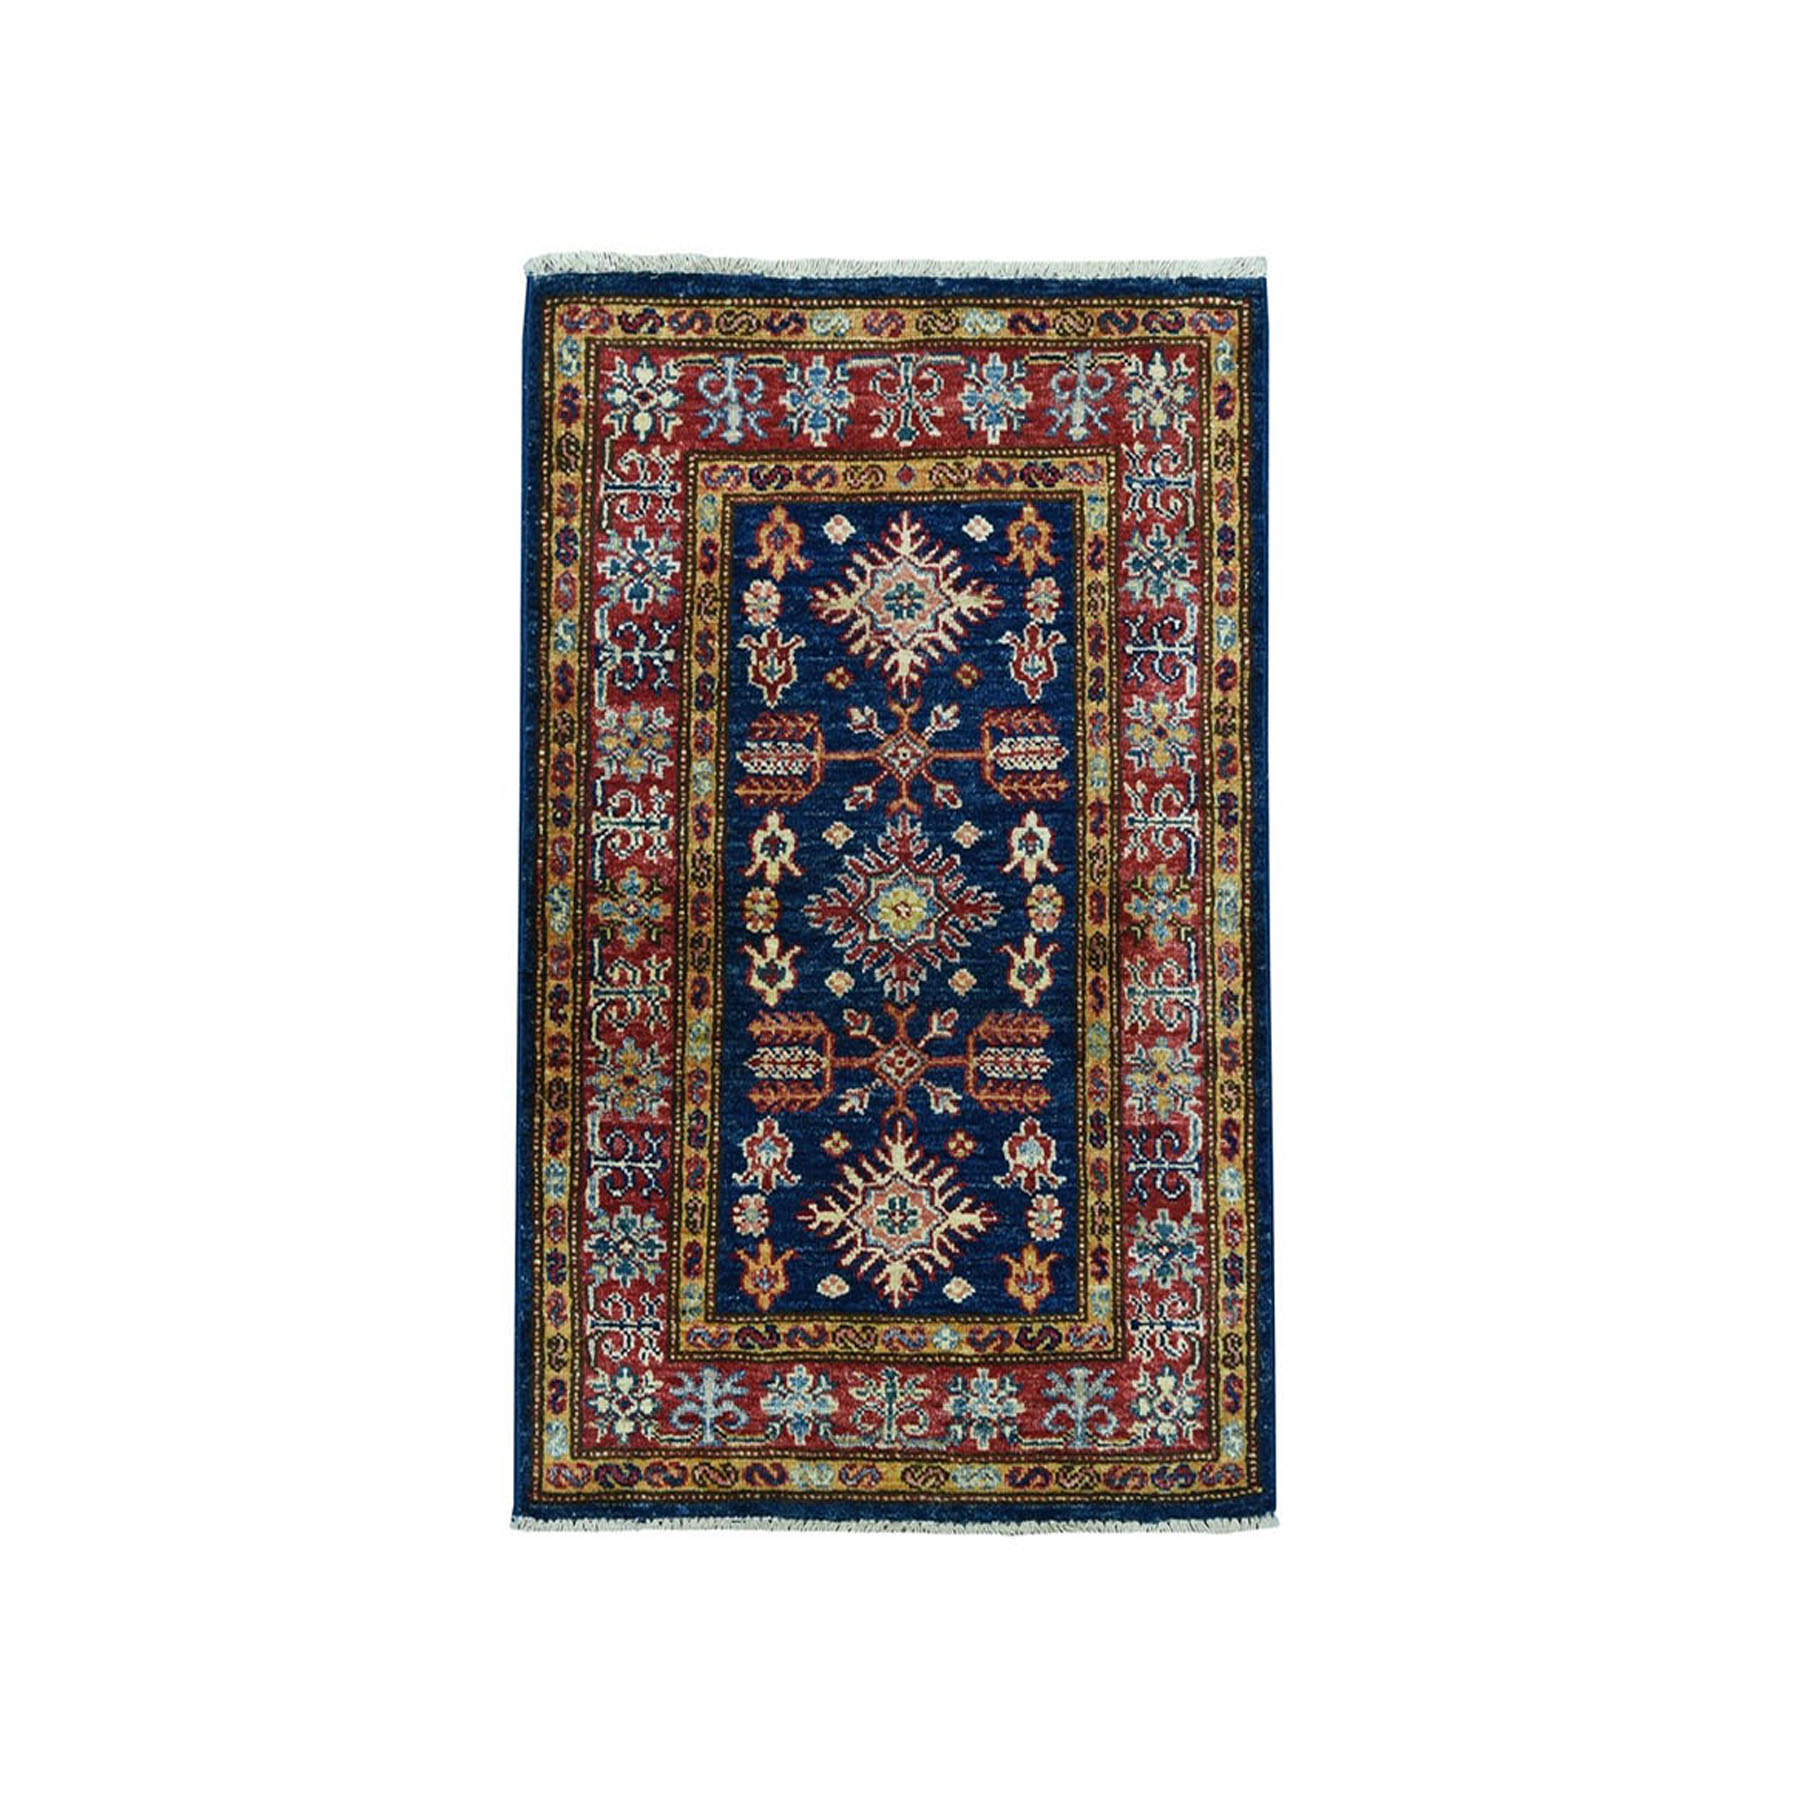 "2'X3'1"" Blue Super Kazak Geometric Design Pure Wool Hand-Knotted Oriental Rug moaea068"